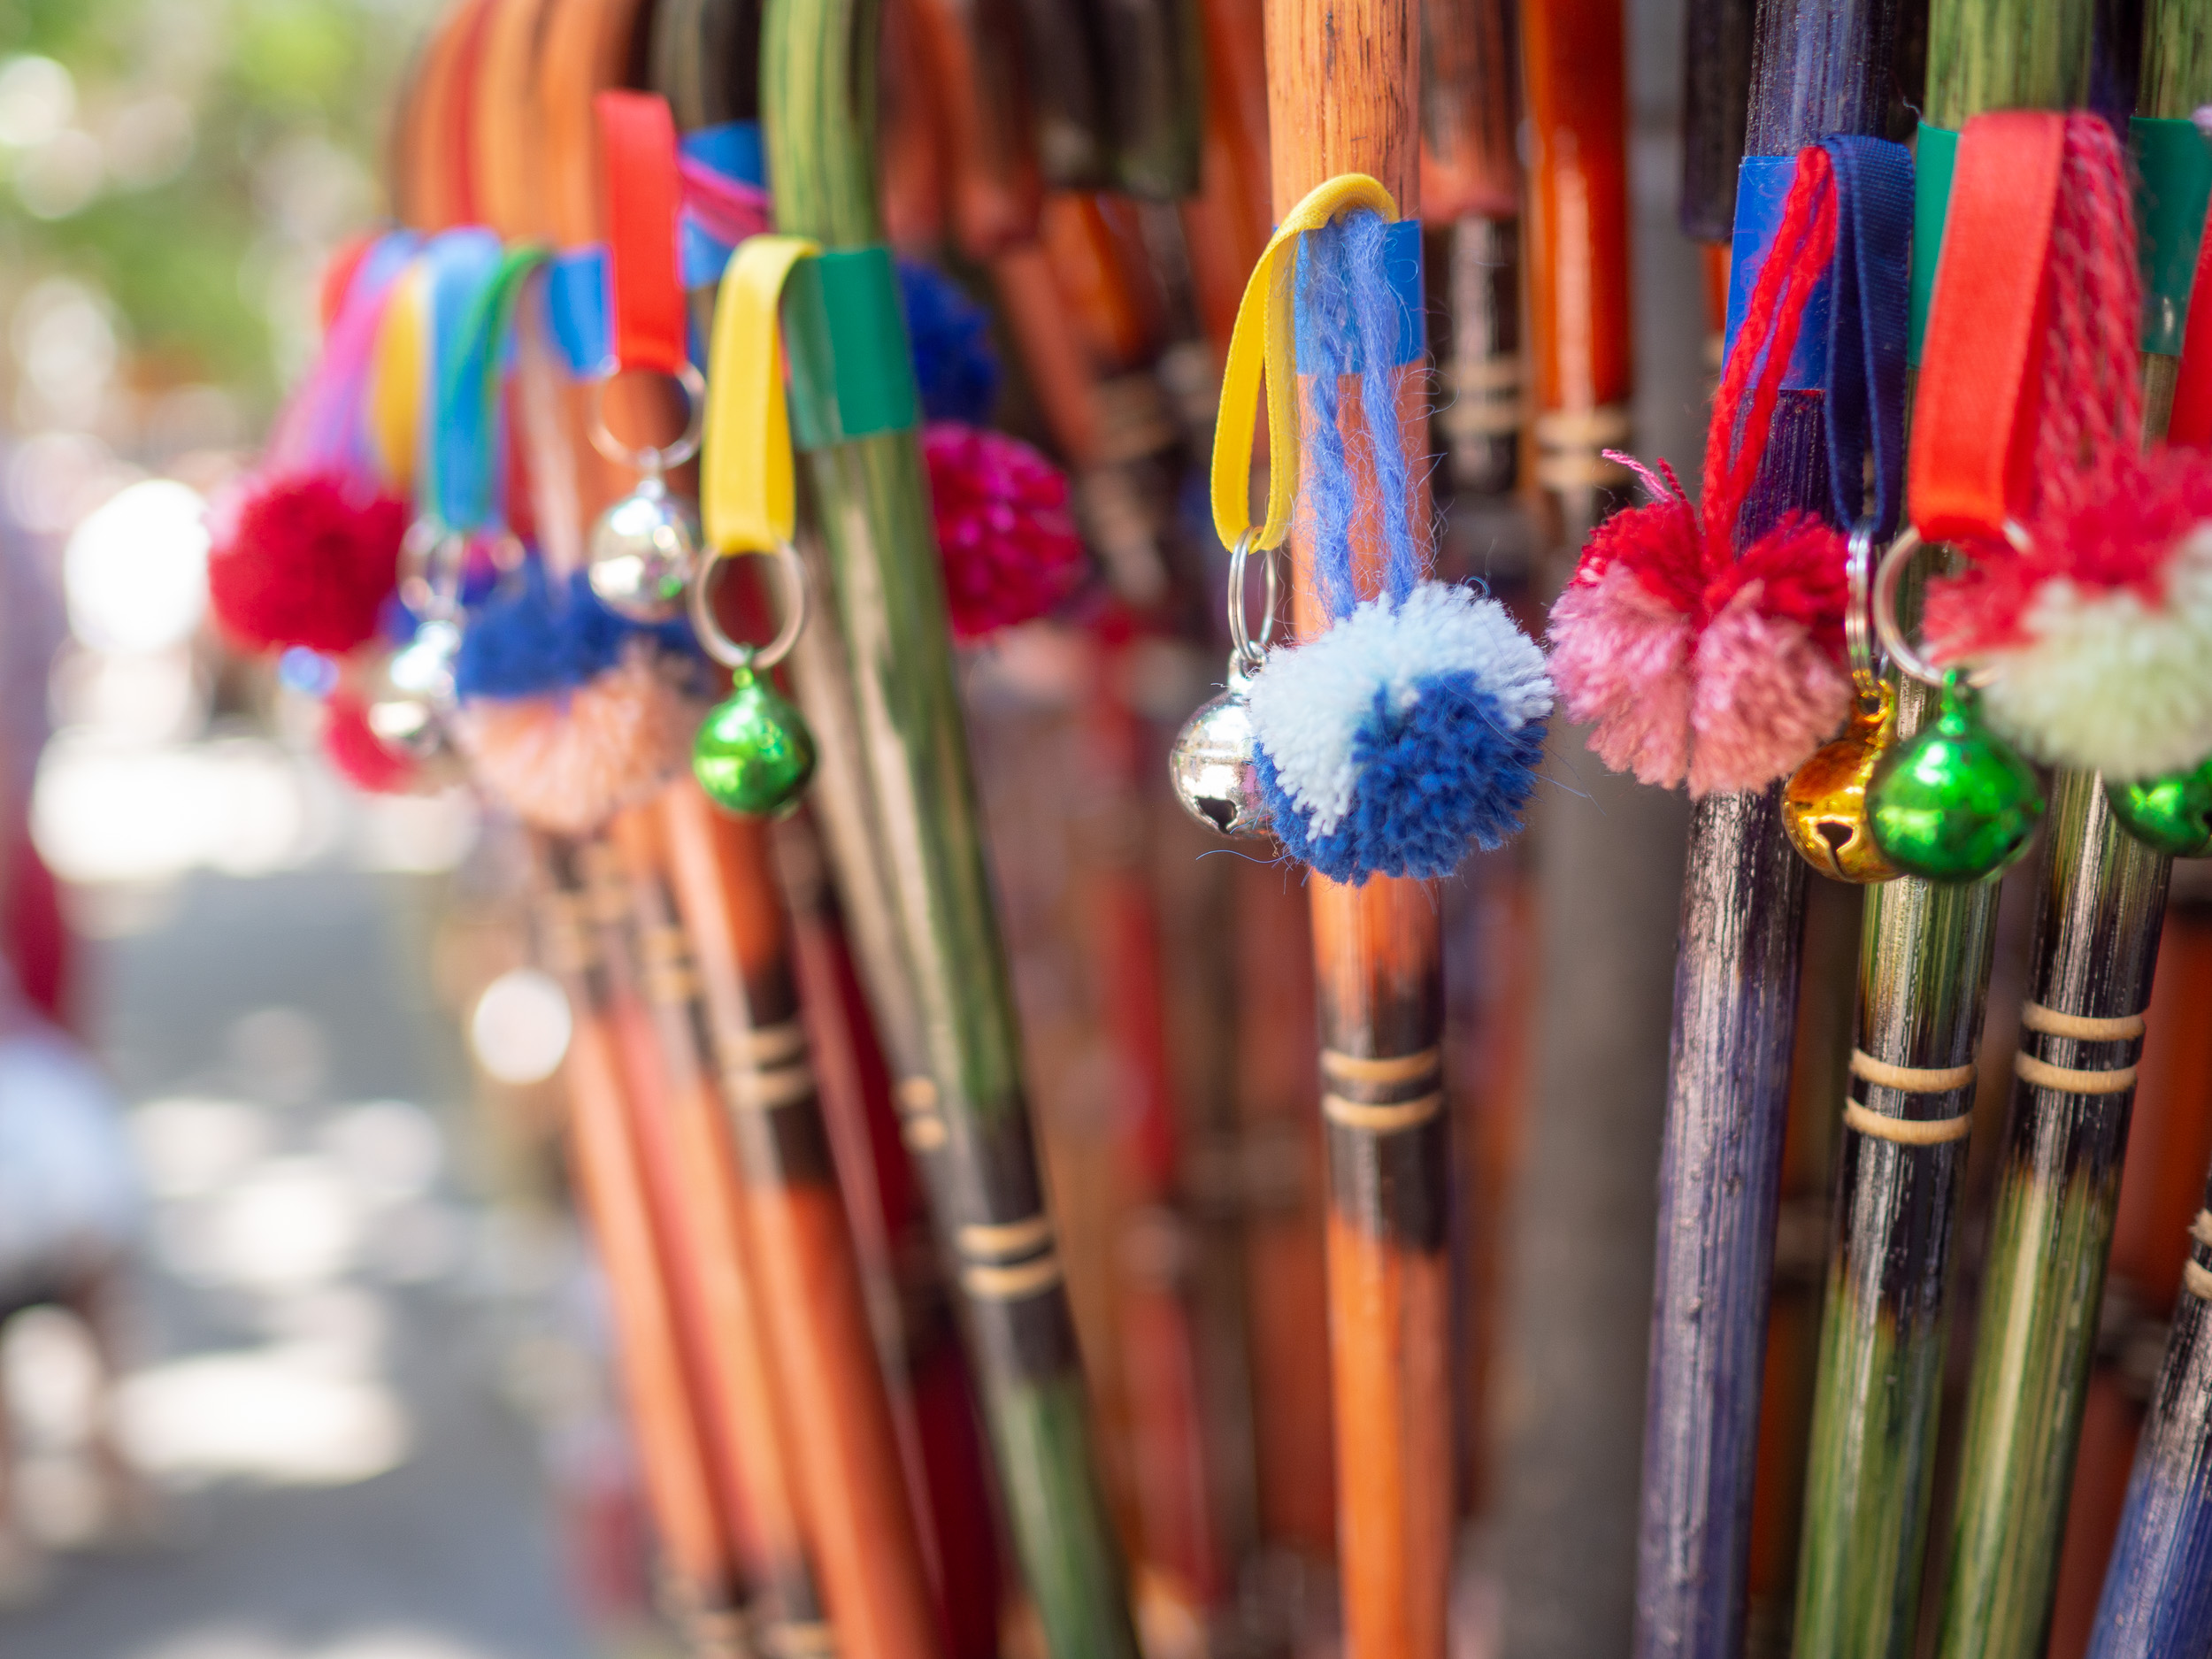 coloured walking stick with bobbles-8170639.jpg